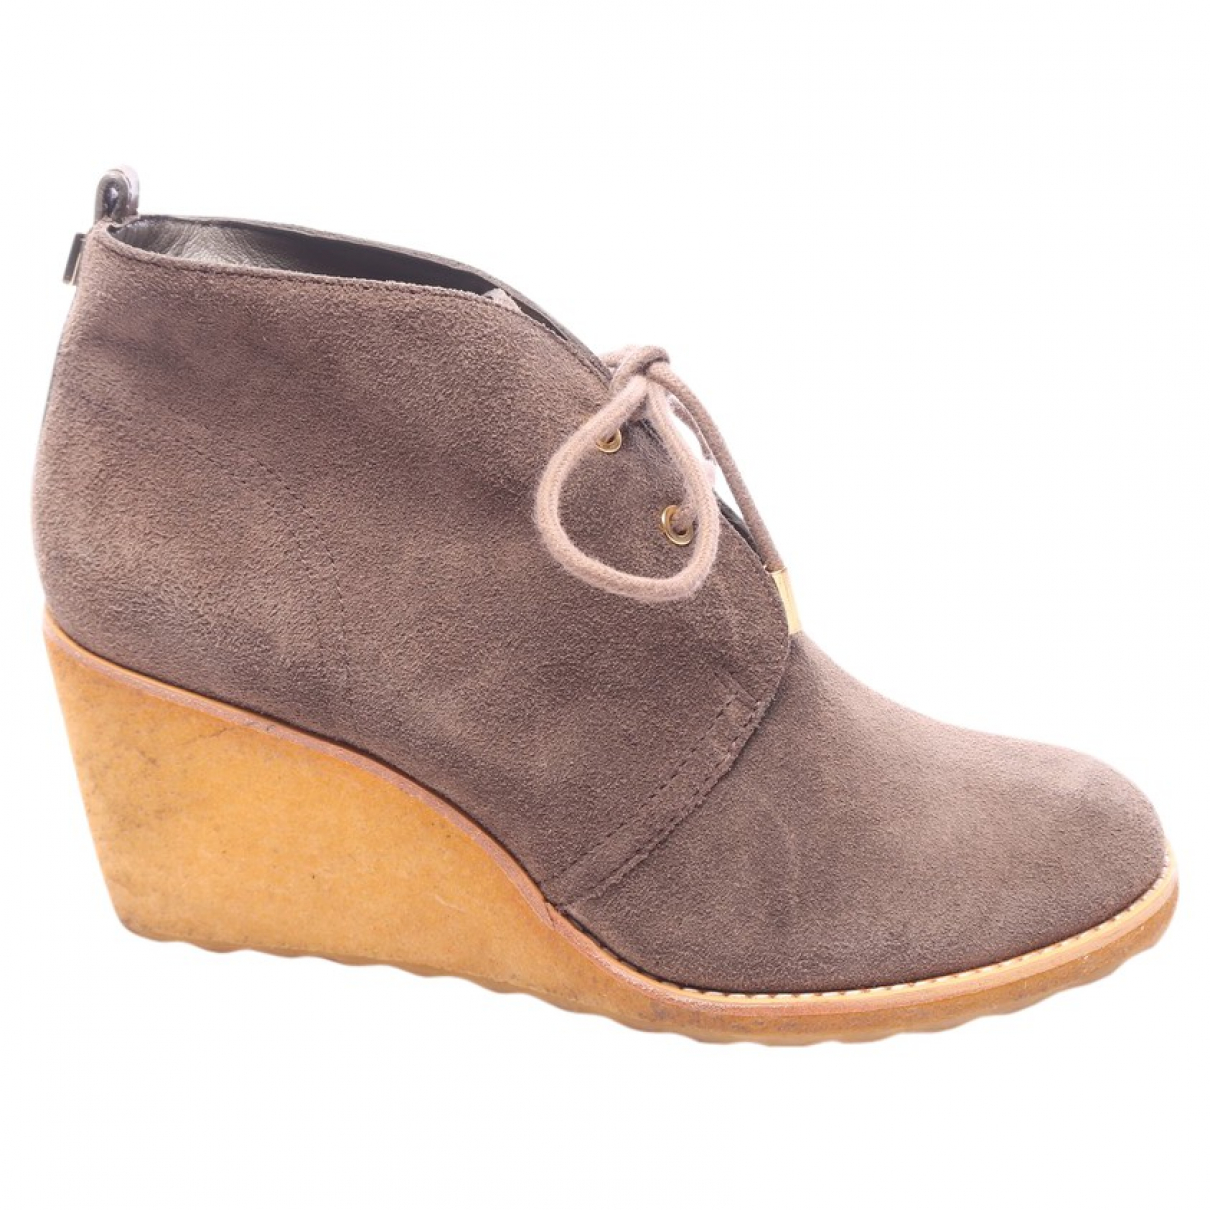 Tory Burch \N Brown Tweed Ankle boots for Women 40.5 EU